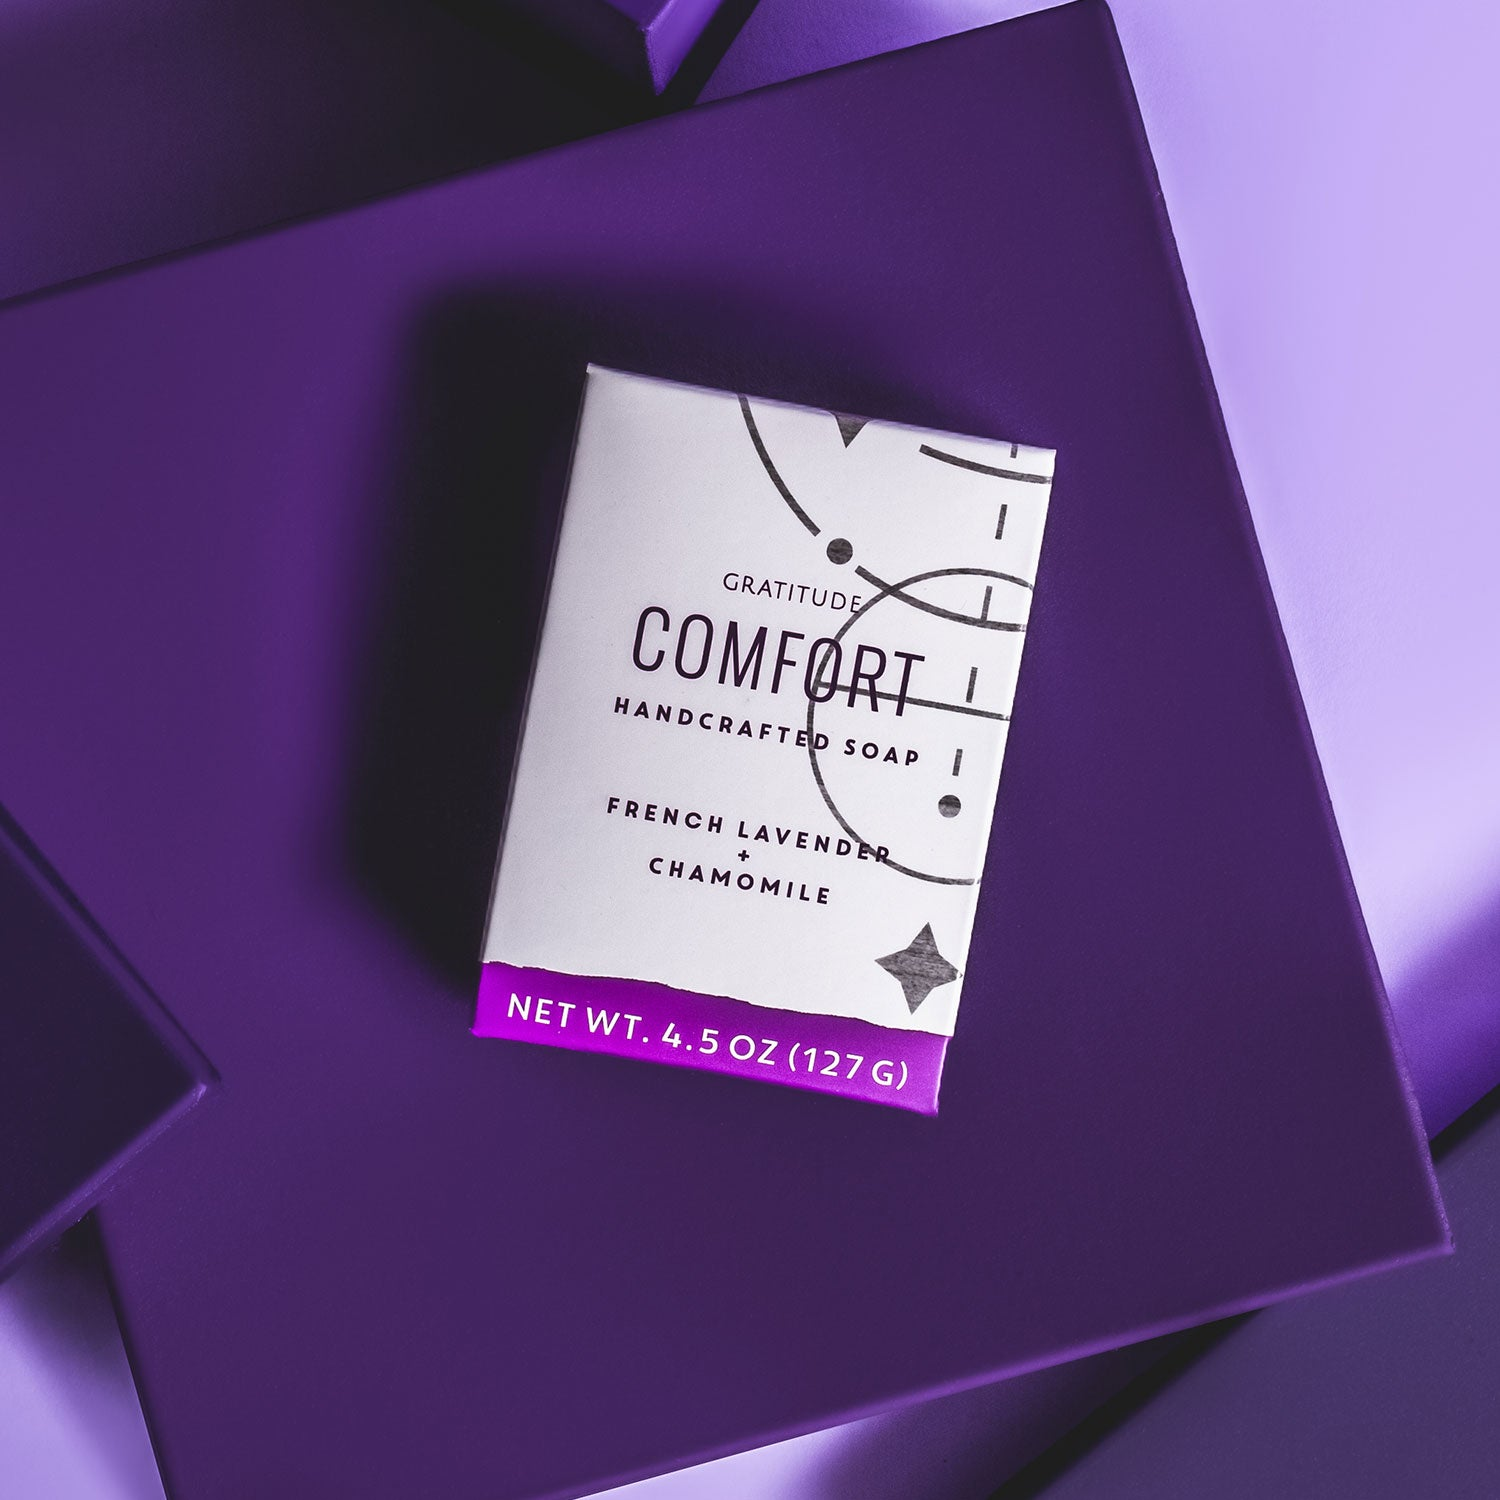 A box of Comfort soap on a purple background